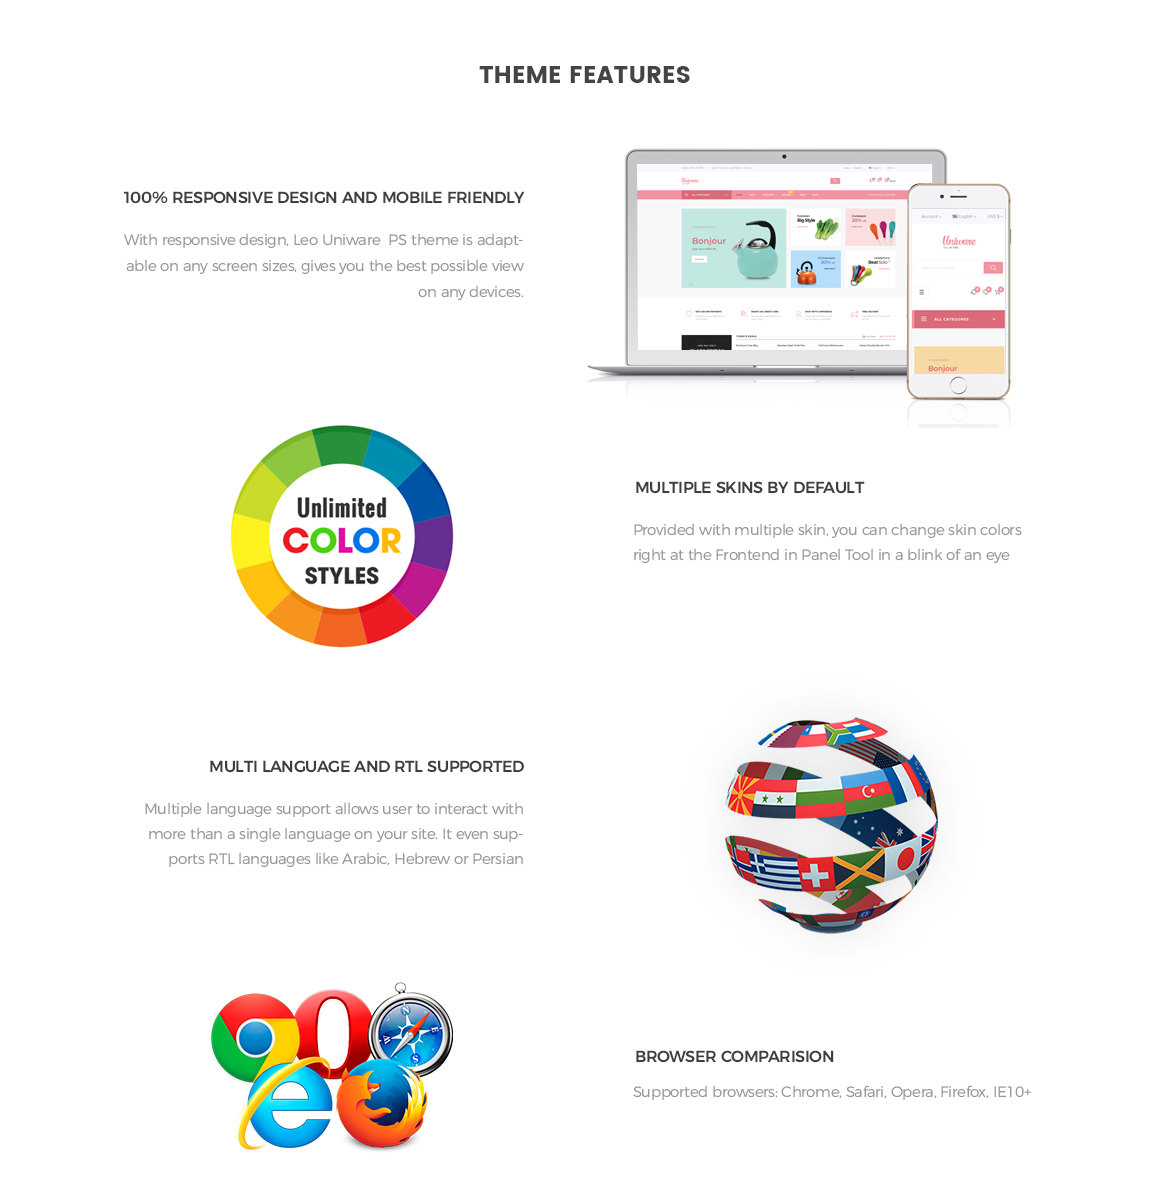 Prestashop 1.7 theme features-Leo Uniware Prestashop Theme - Kitchen Tool, Cookware, Kitchenware